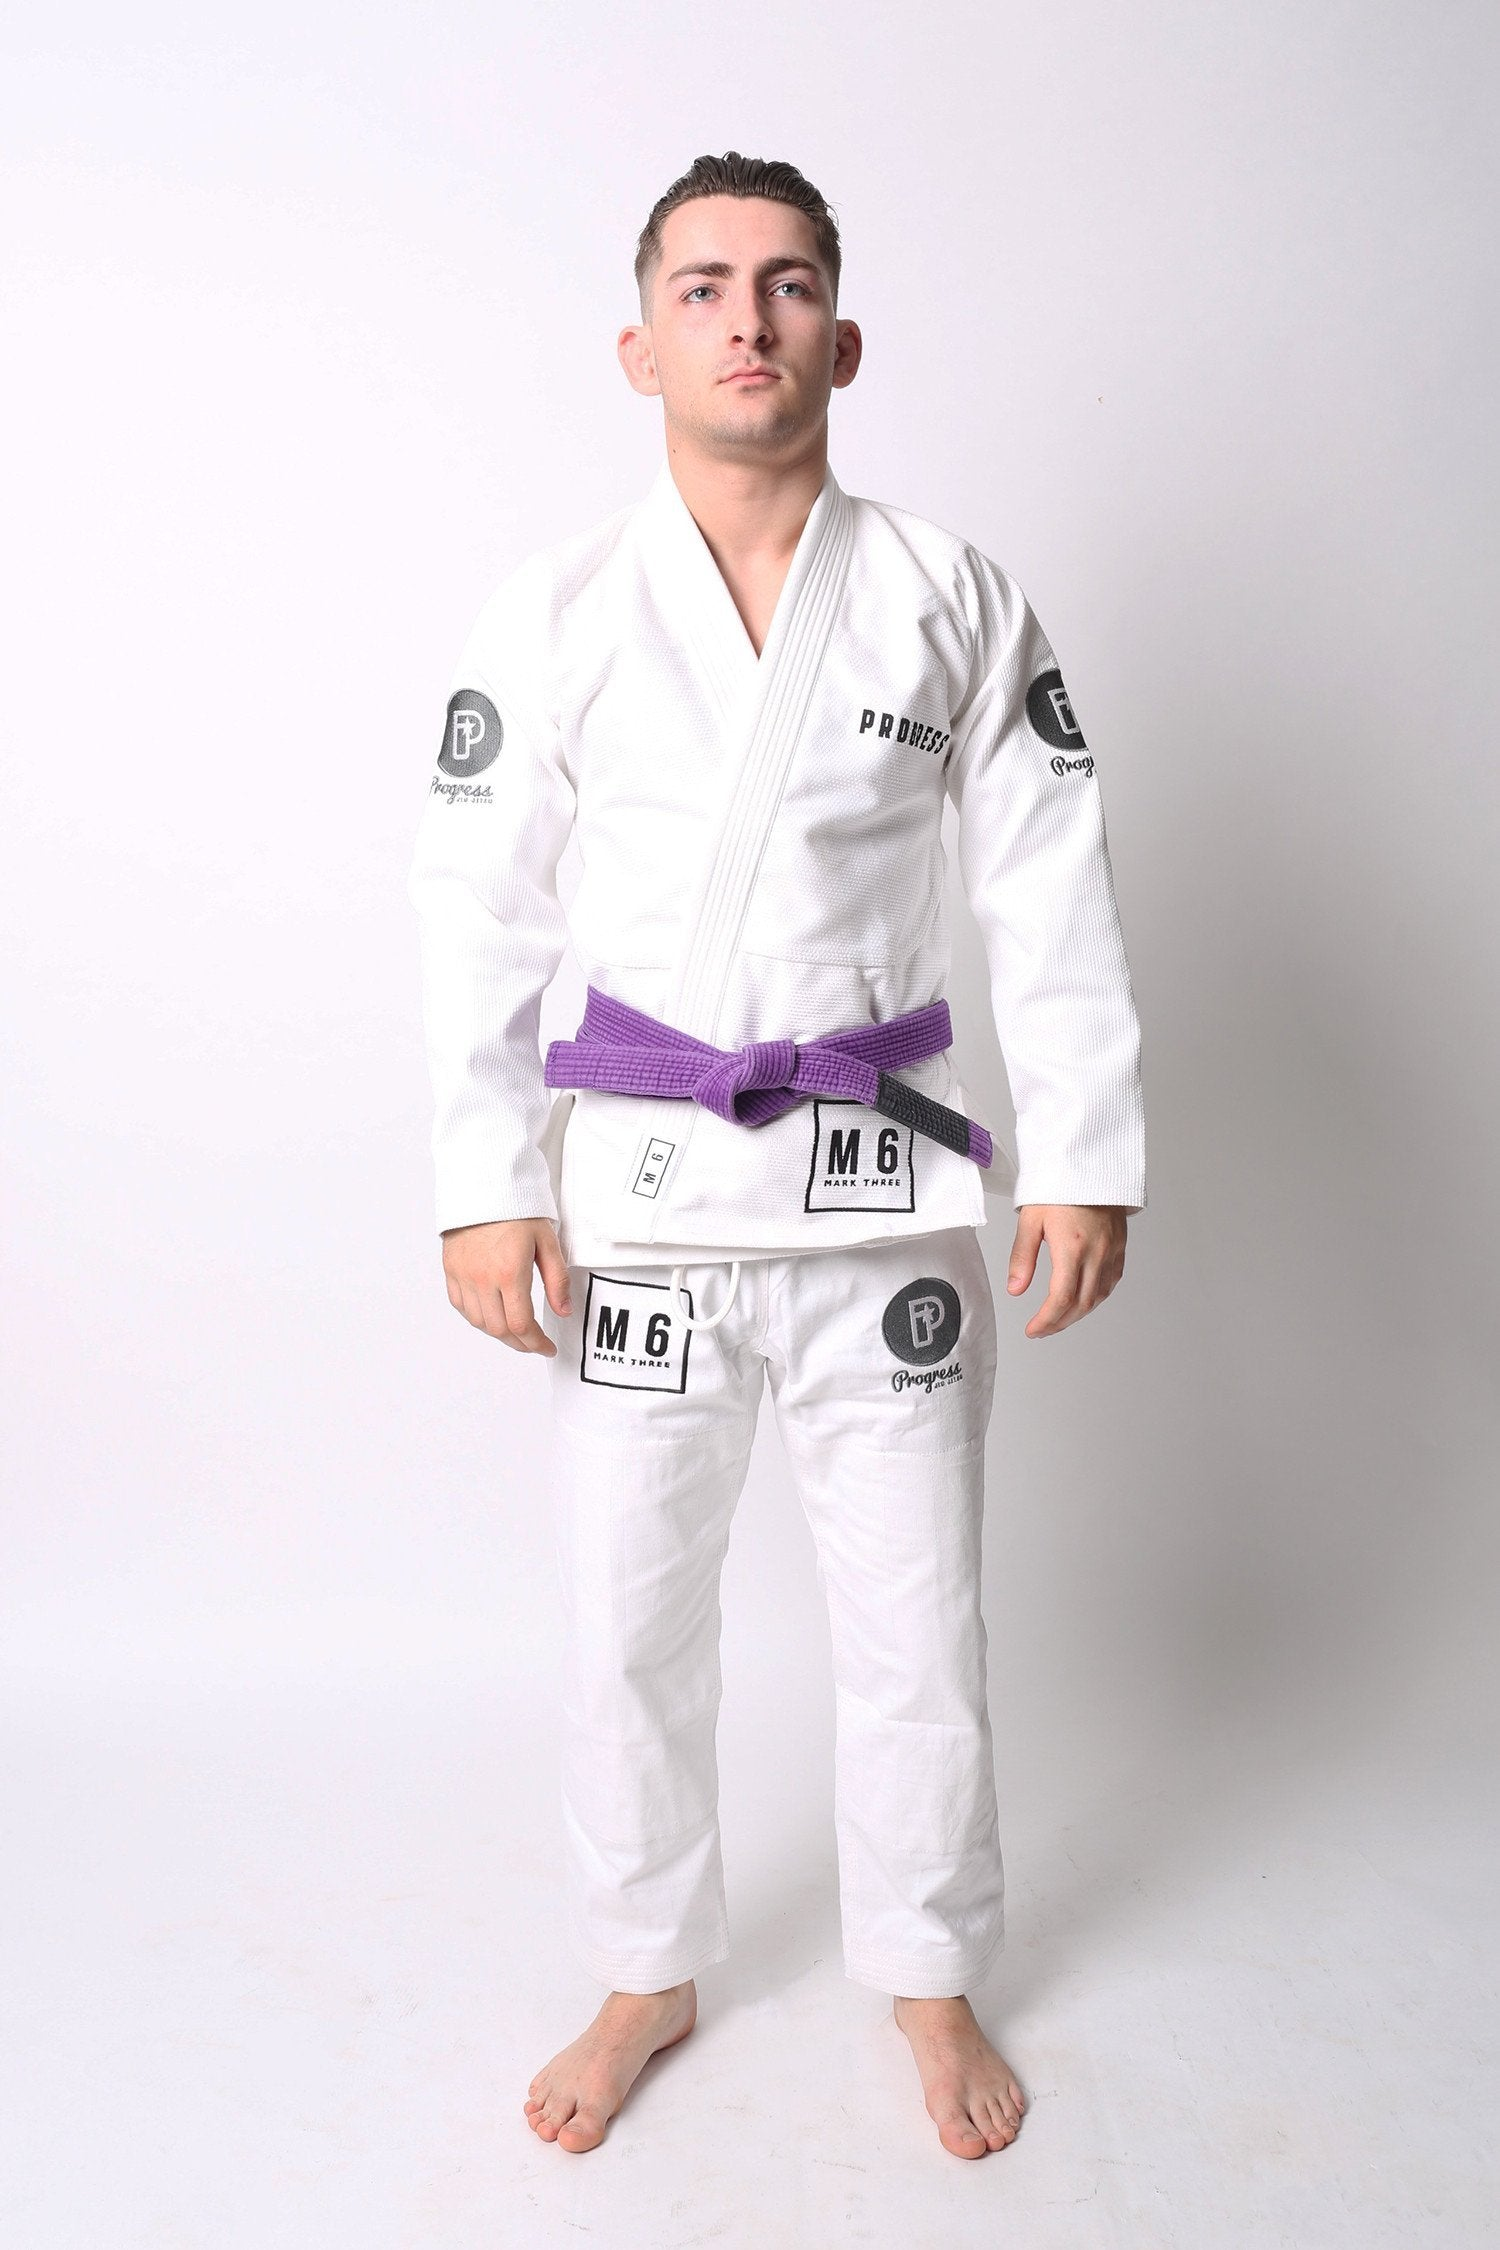 Image of Progress M6 MK3 White BJJ Gi